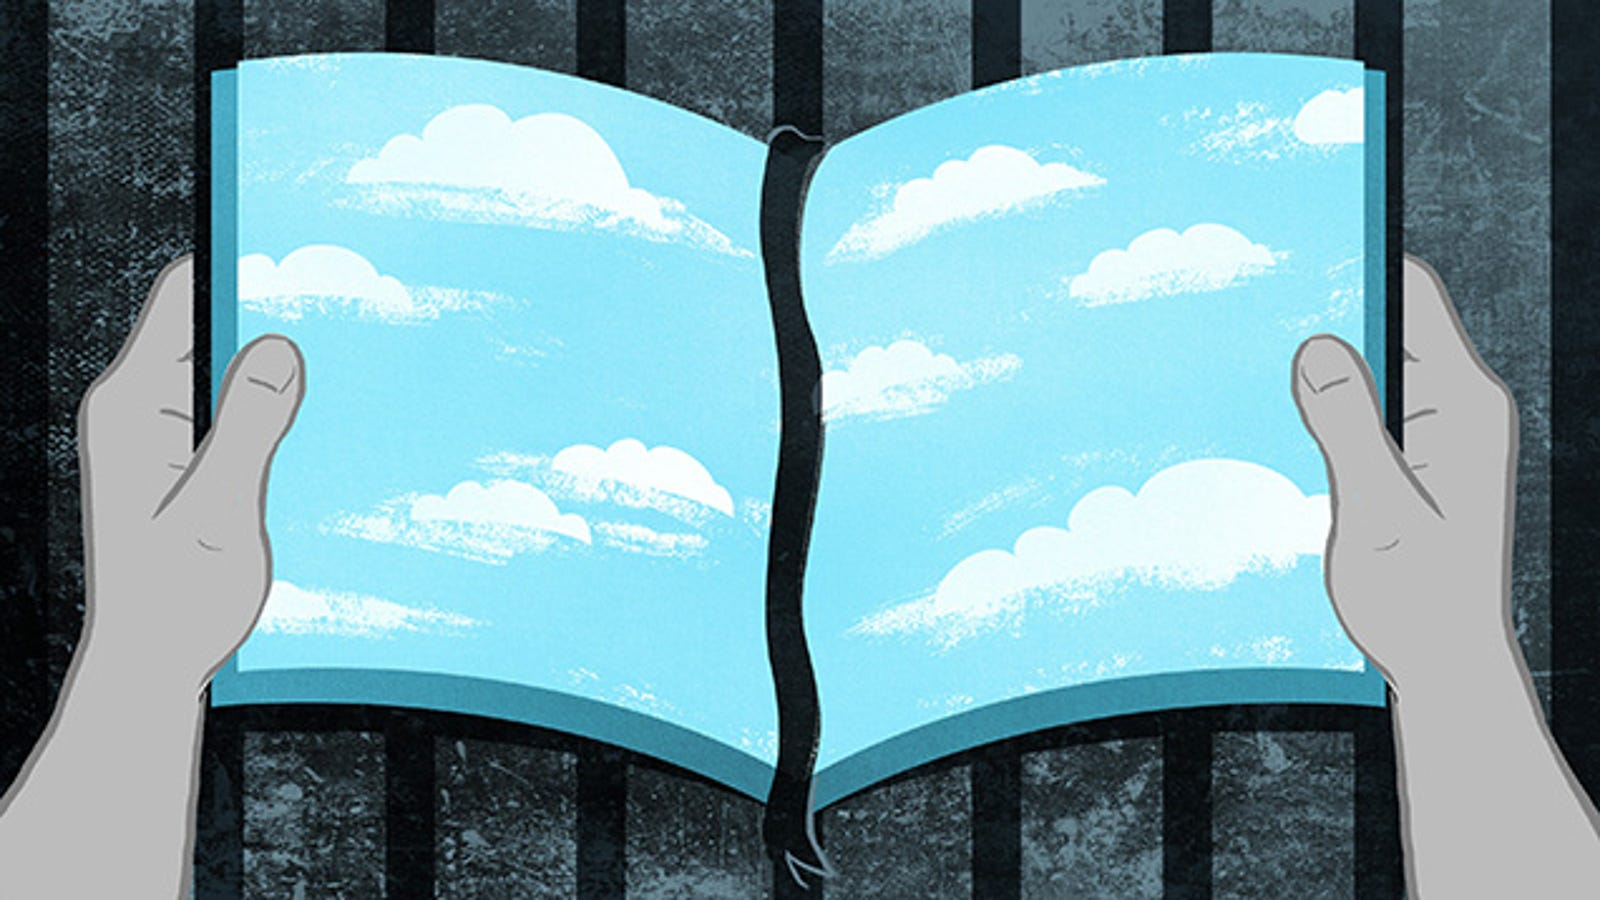 Drugs, Chess, Books, Or Gambling: How To Fight Boredom In Prison